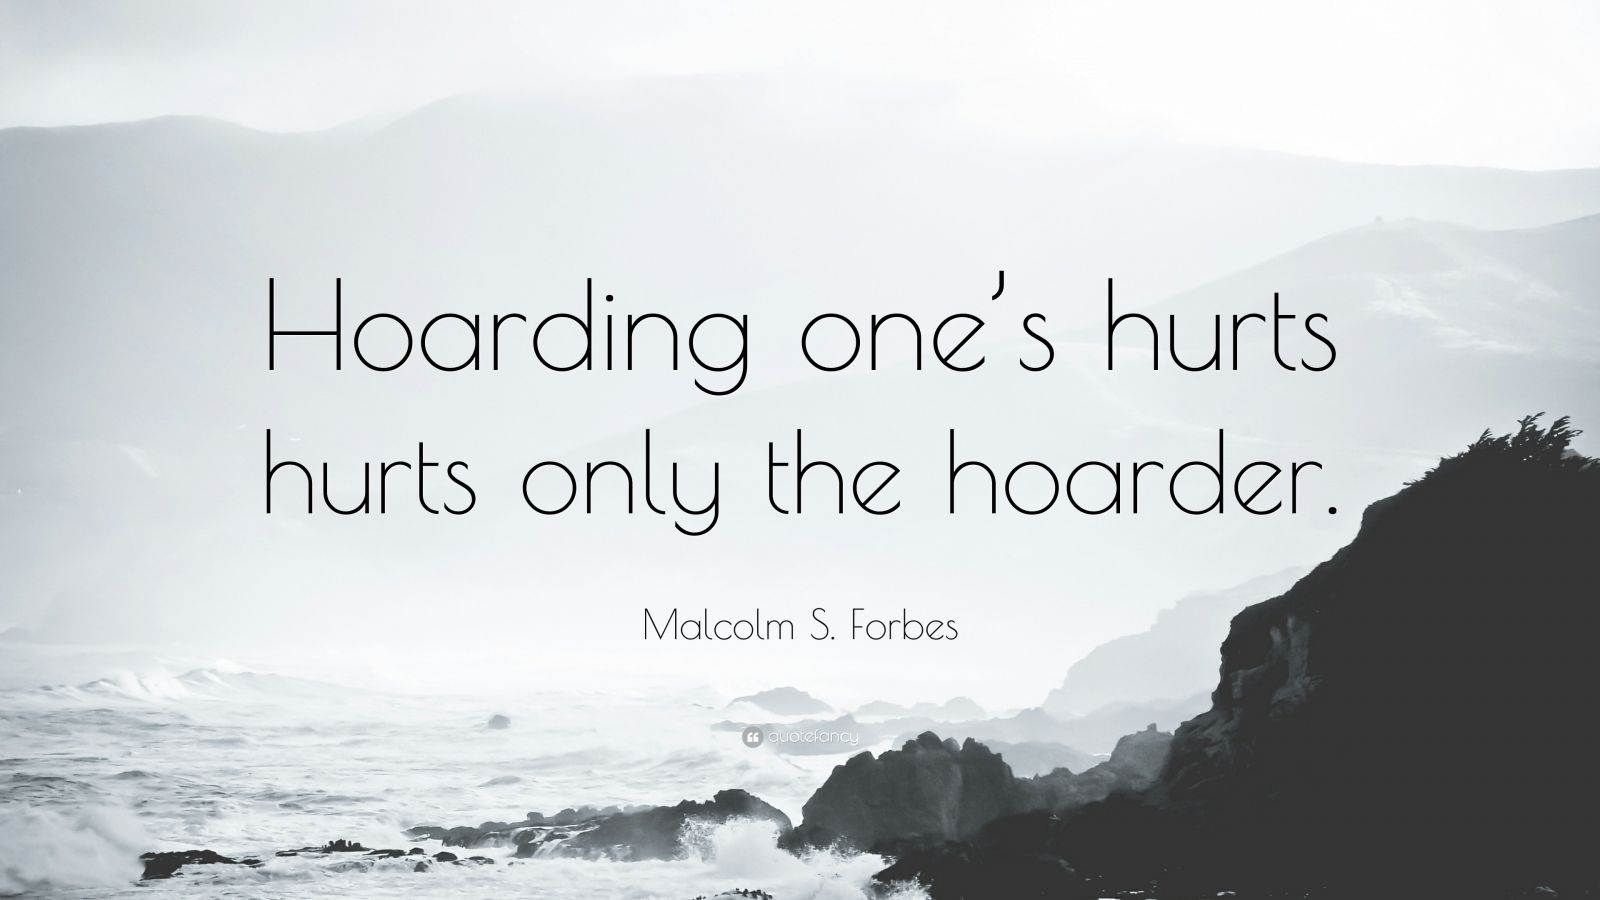 """Malcolm S. Forbes Quote: """"Hoarding one's hurts hurts only the hoarder."""""""